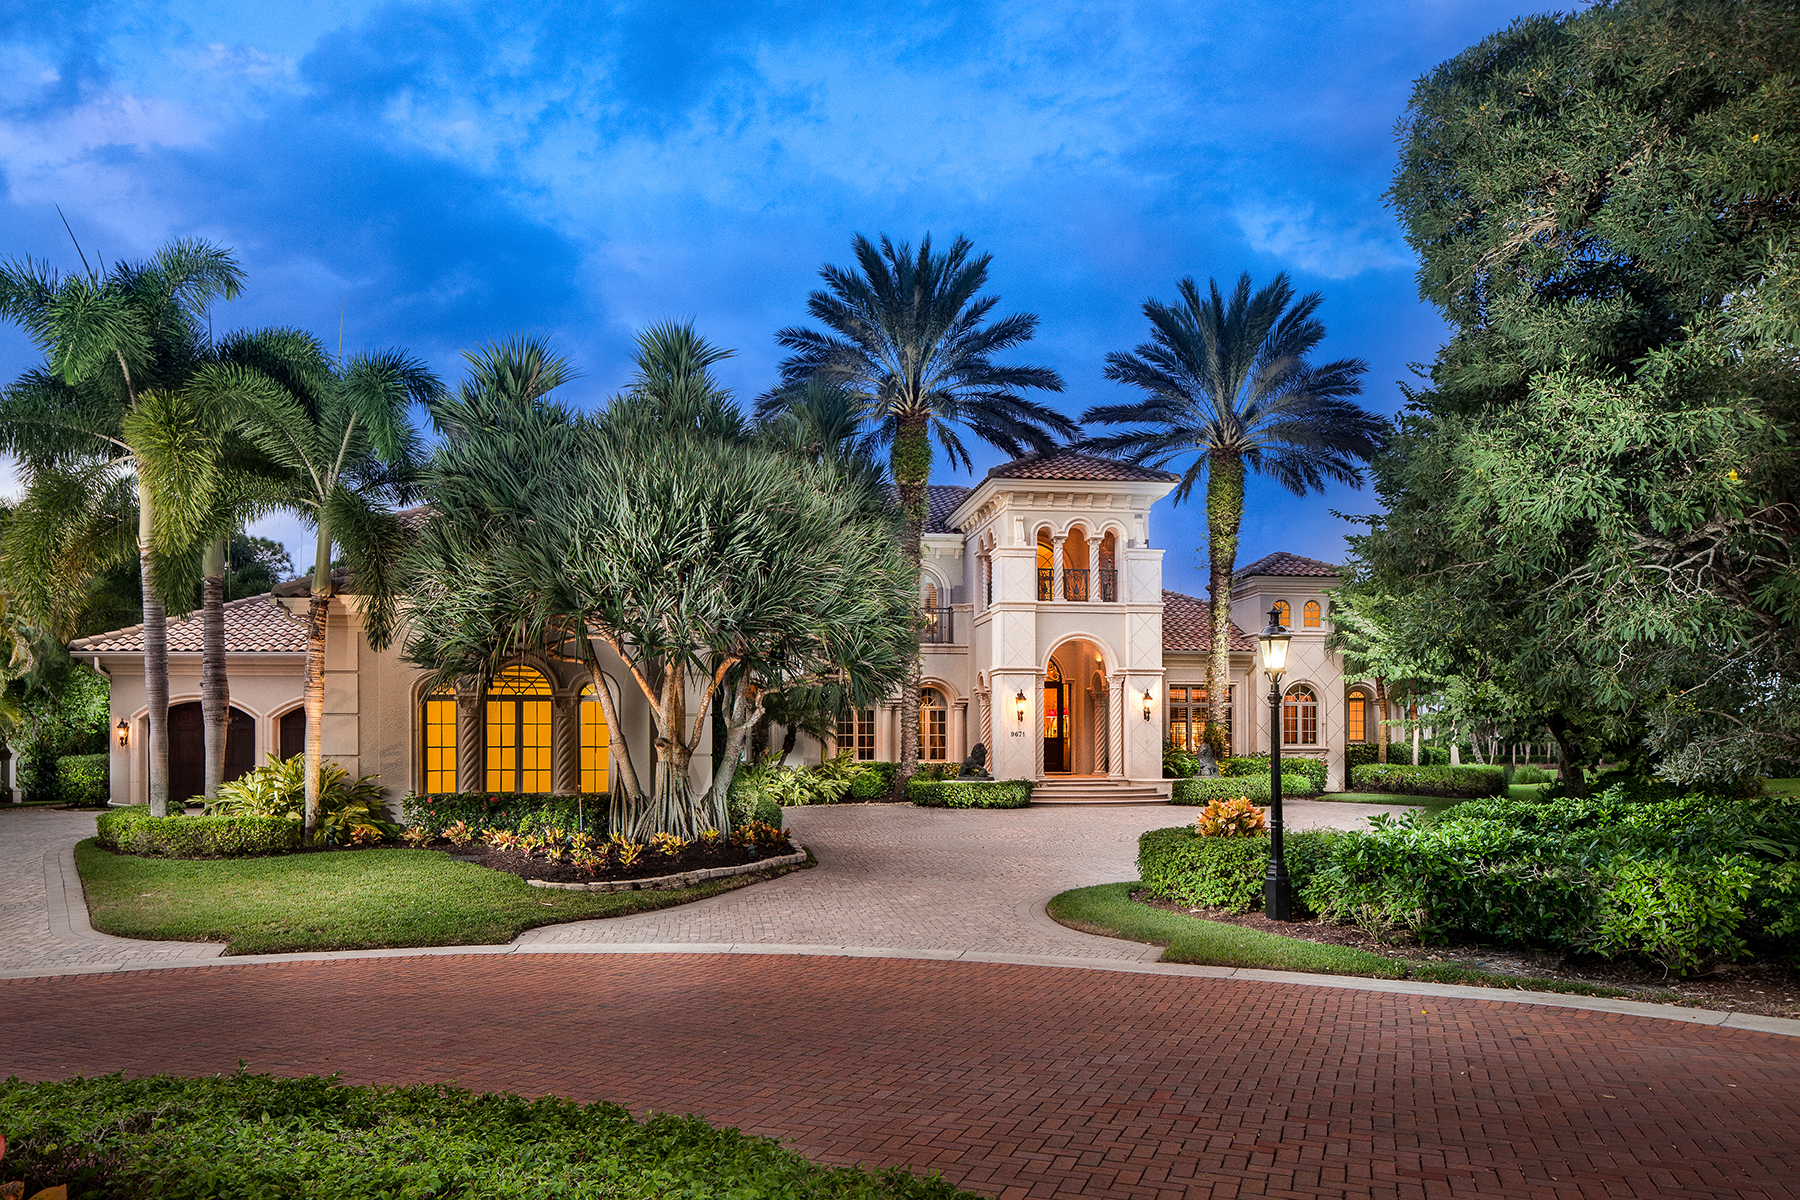 Casa Unifamiliar por un Venta en PELICAN MARSH - ESTATES AT BAY COLONY GOLF CLUB 9671 Mashie Ct Naples, Florida, 34108 Estados Unidos